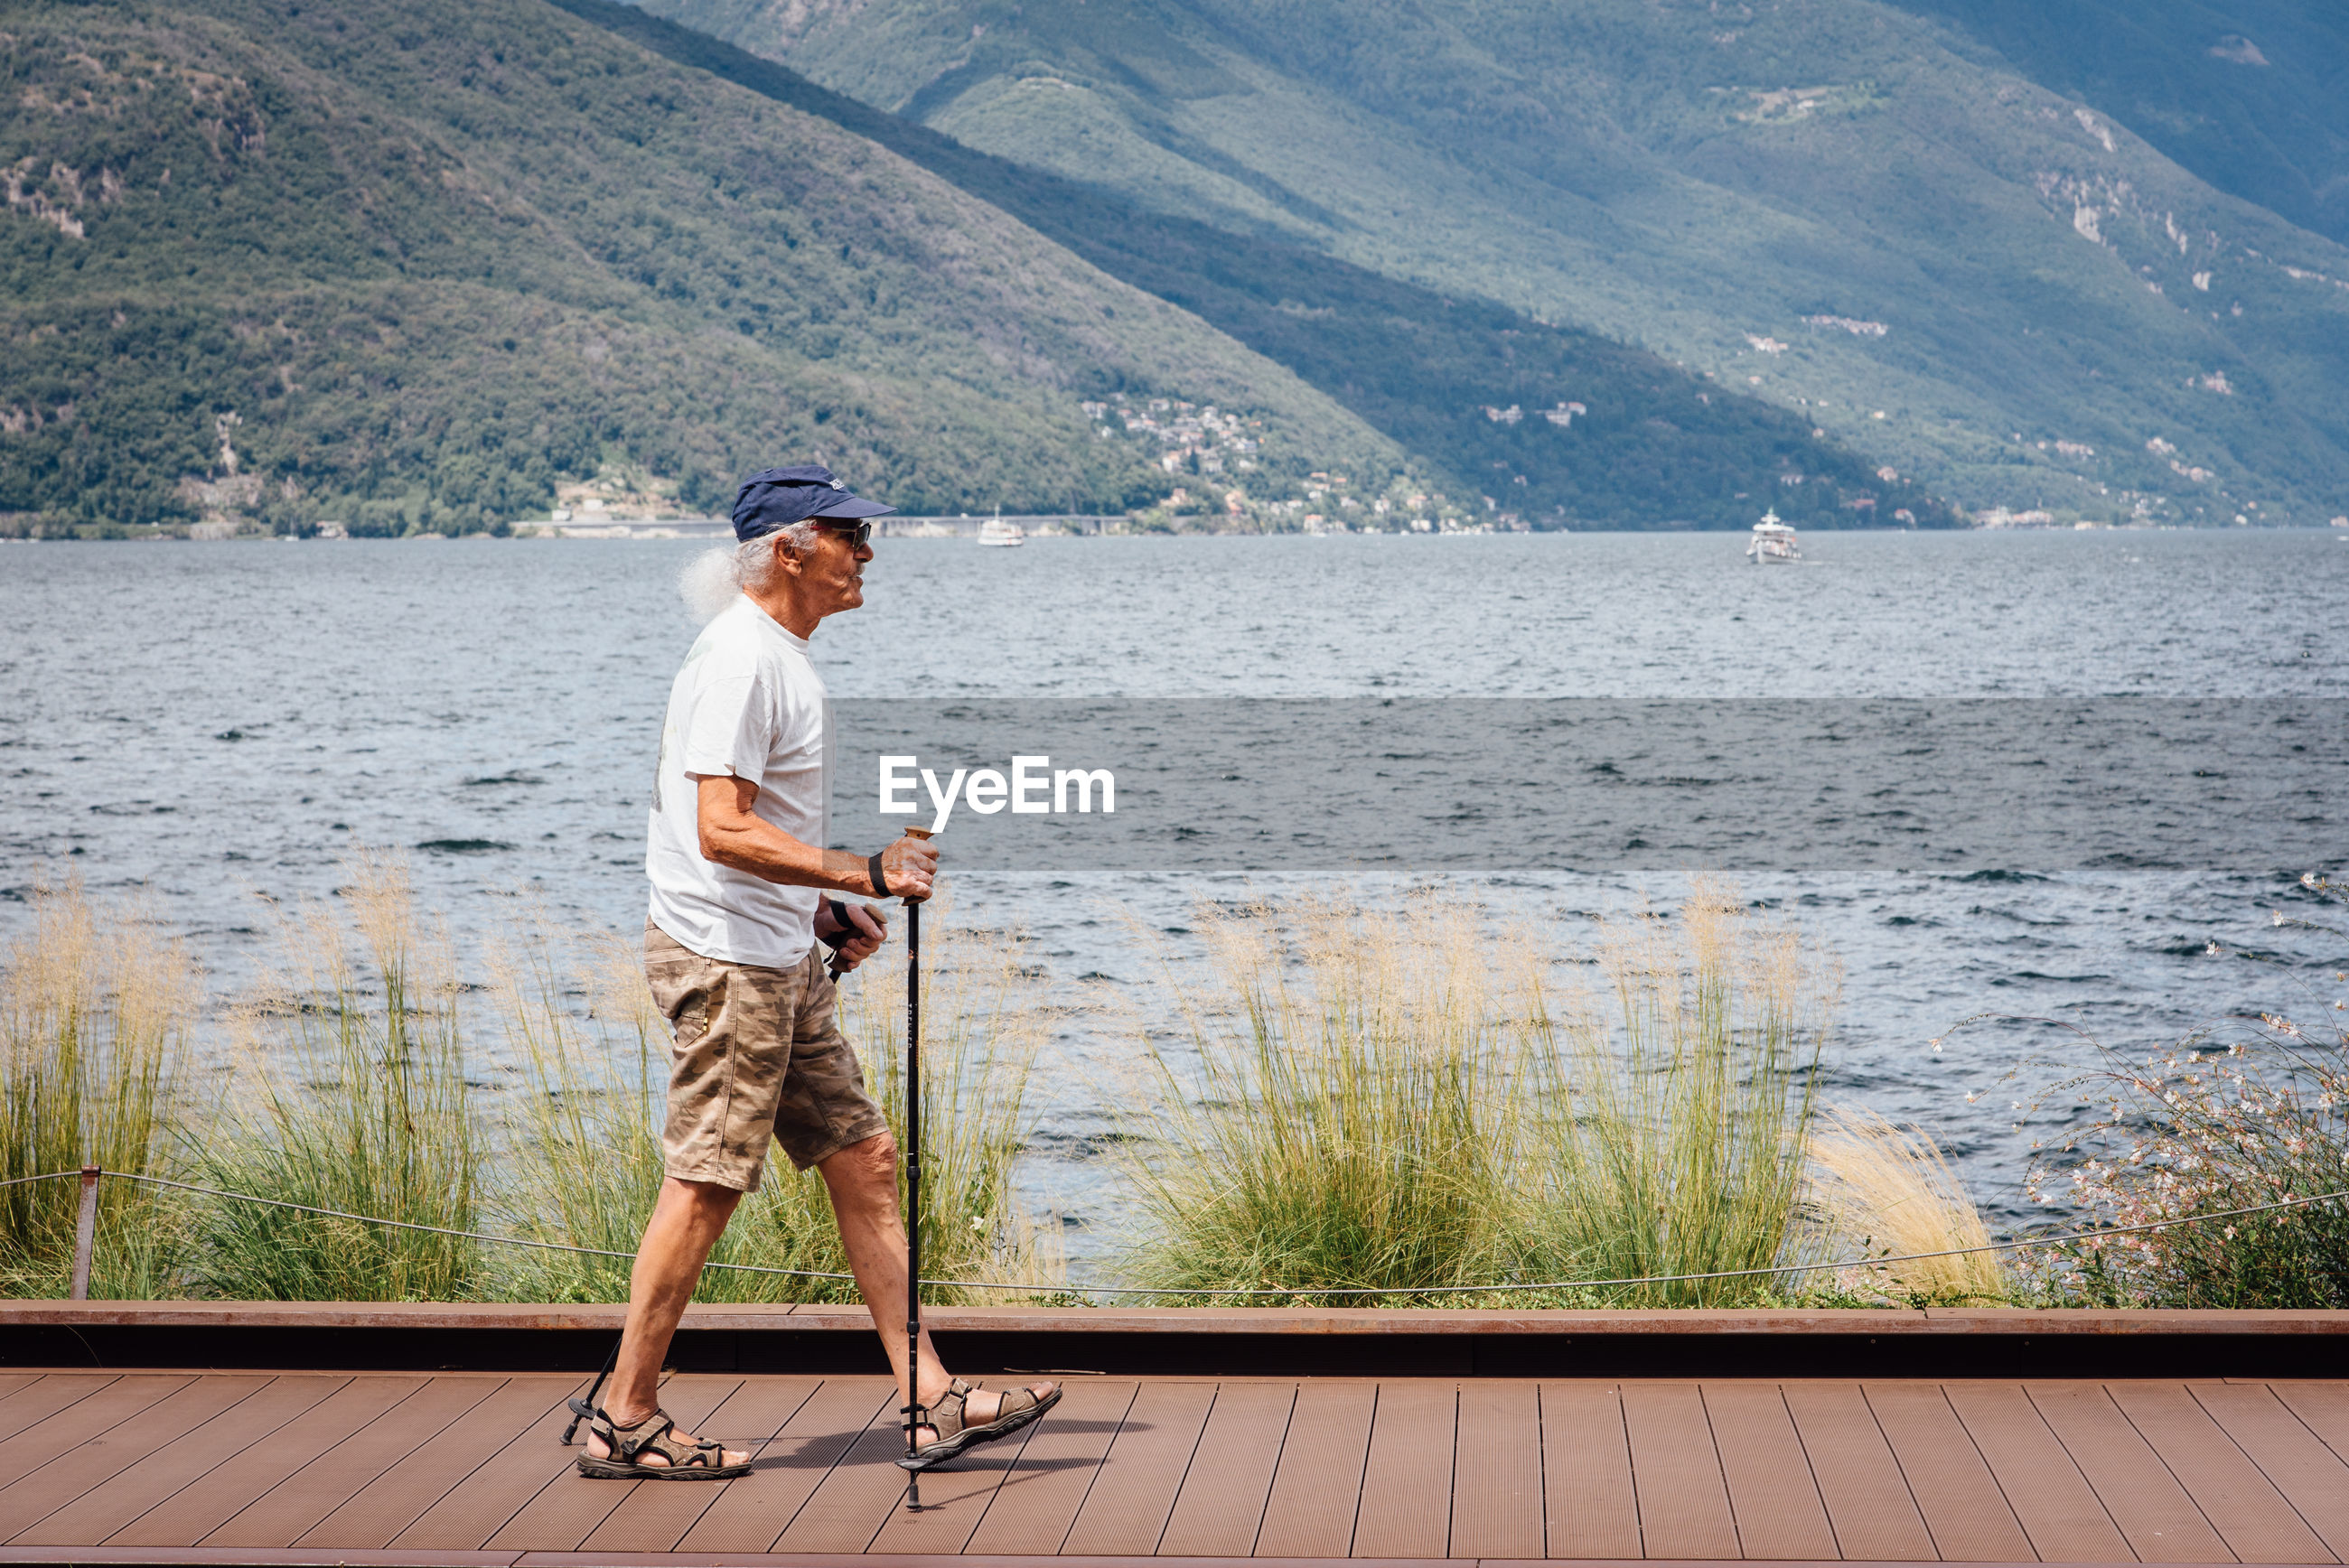 water, full length, standing, one person, lake, day, adult, leisure activity, mountain, casual clothing, nature, cap, men, holding, holiday, side view, looking, outdoors, shorts, looking at view, contemplation